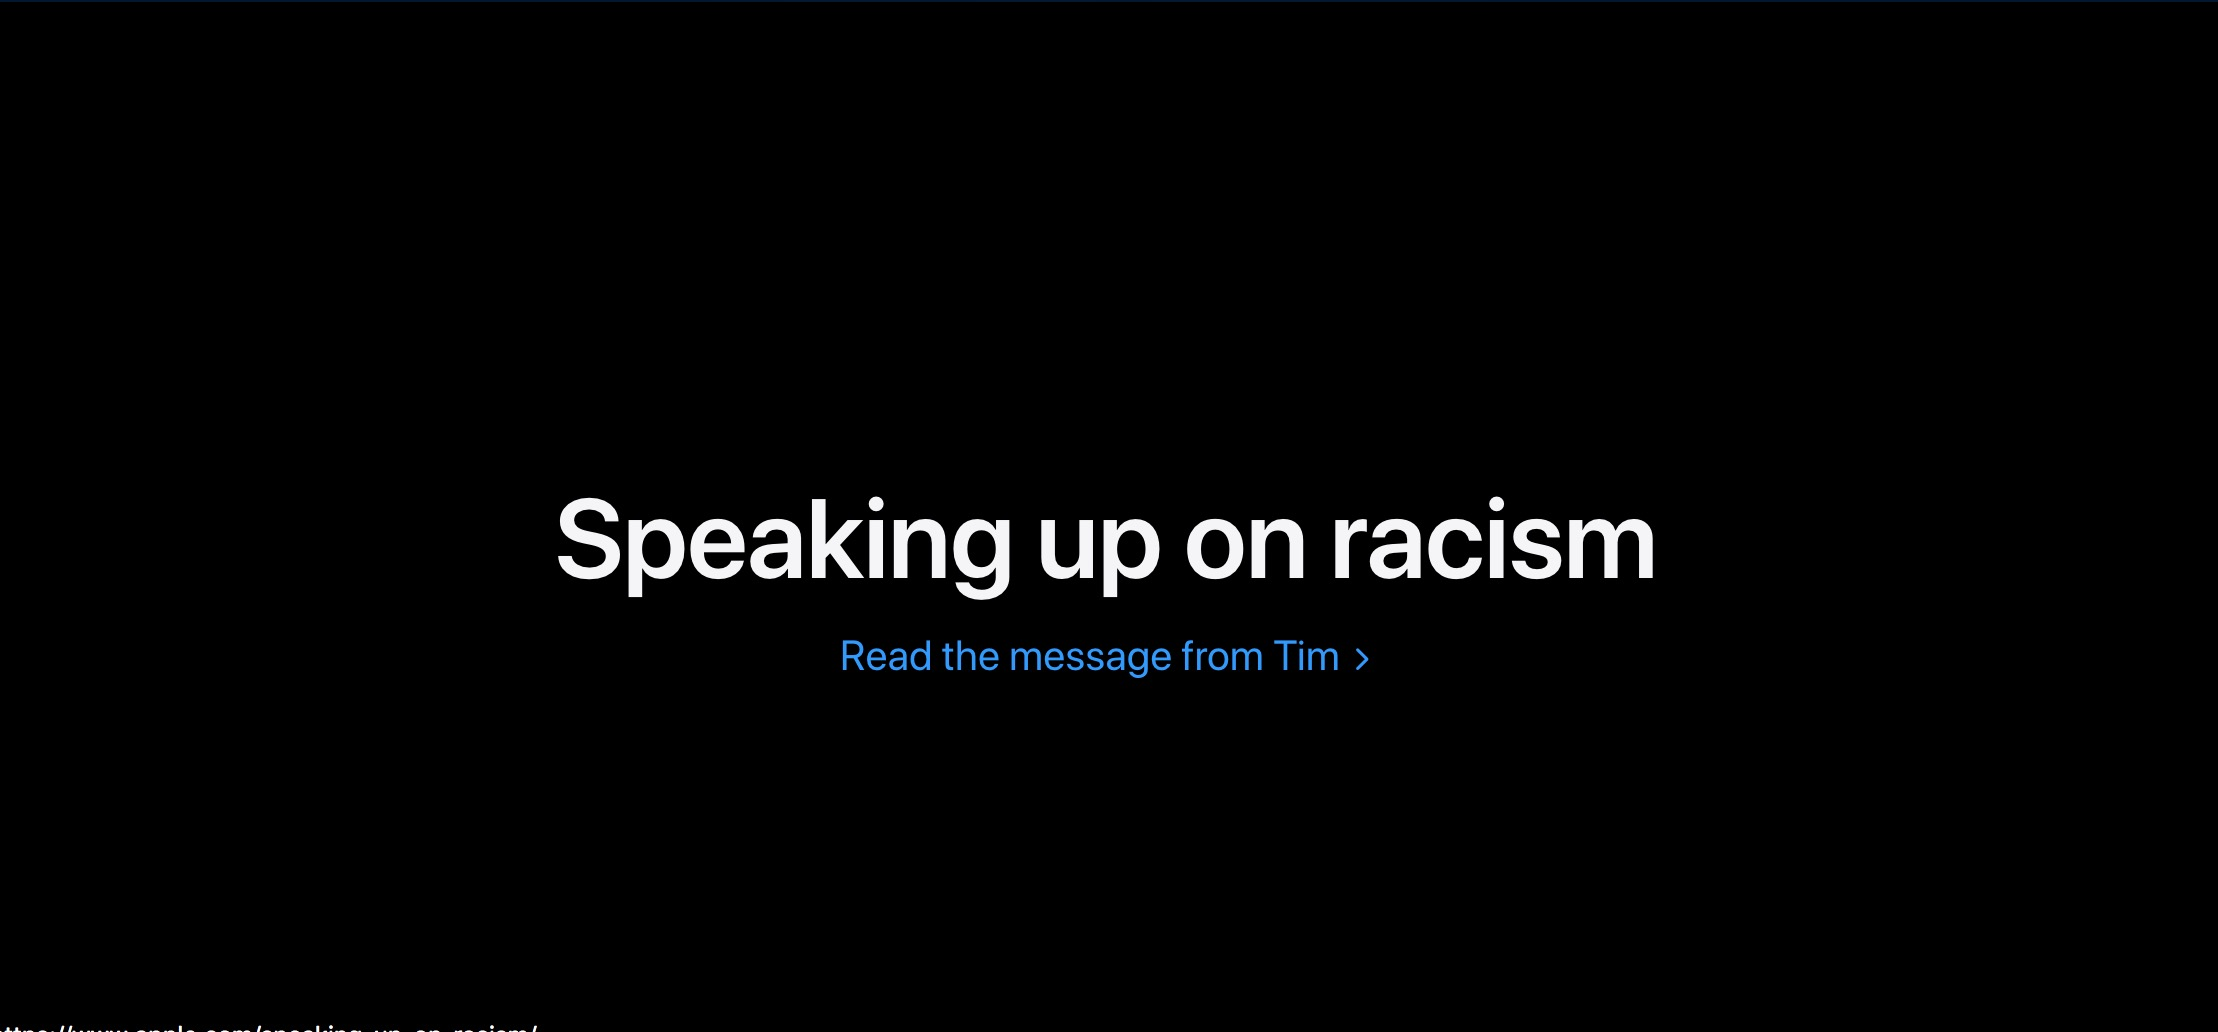 Apple-carta contra el racismo-Tim Cook